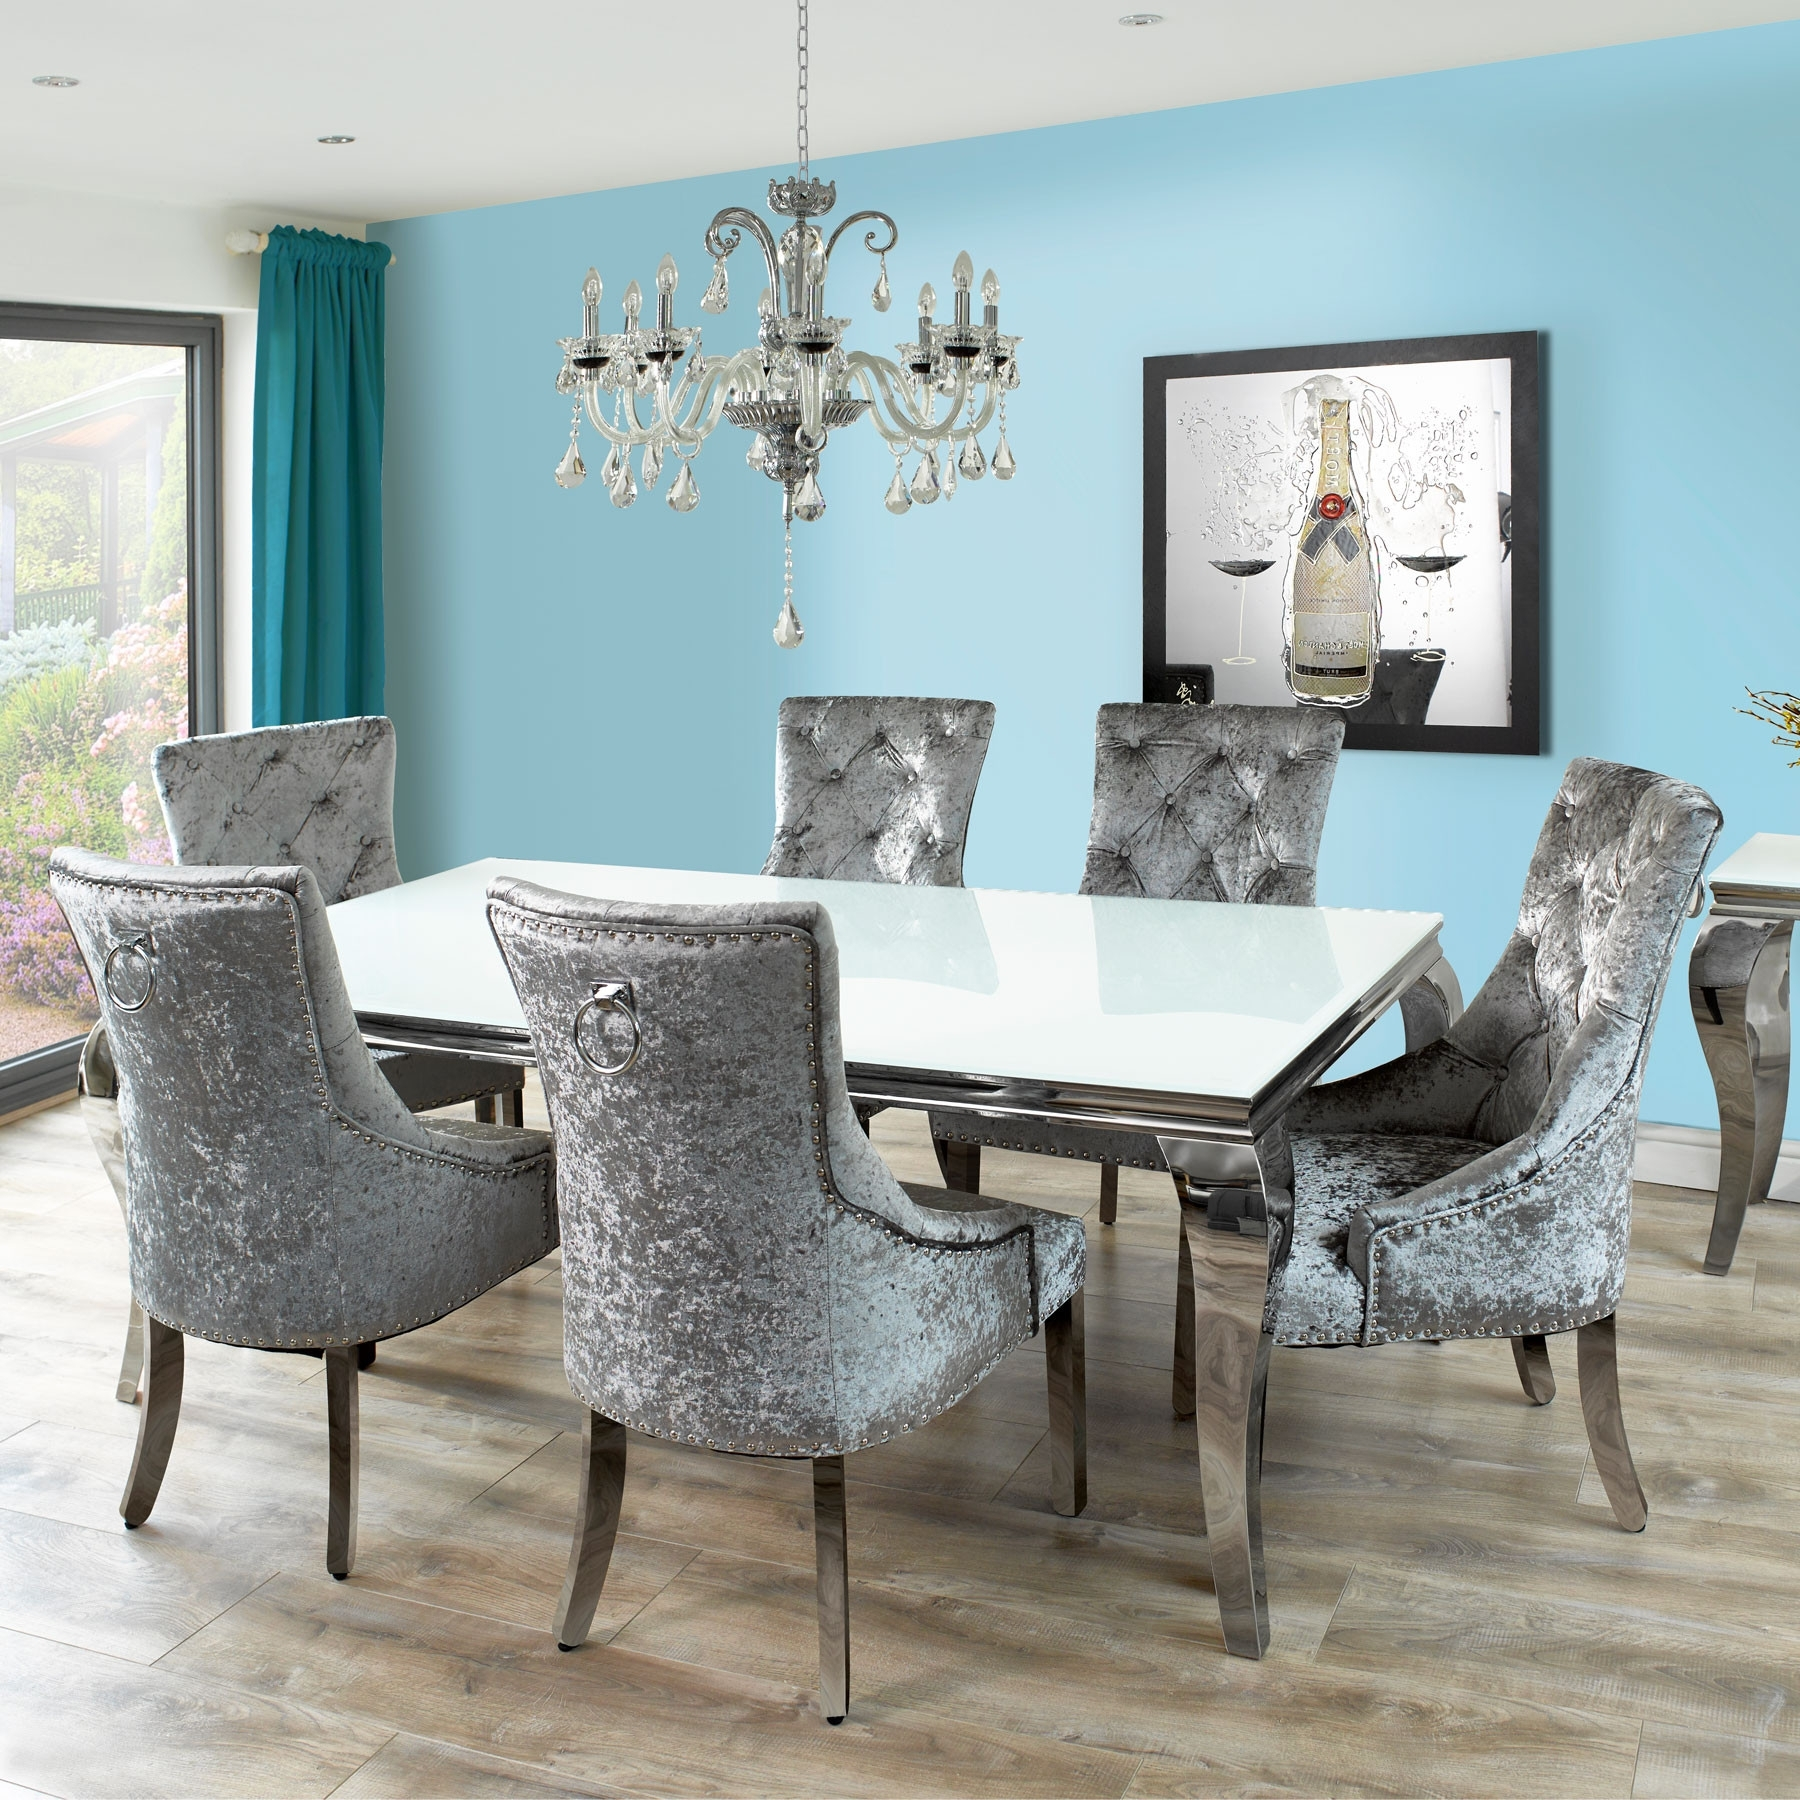 Fadenza White Glass Dining Table & 6 Silver Chairs With Knocker And Pertaining To Preferred Cheap Glass Dining Tables And 6 Chairs (View 2 of 25)